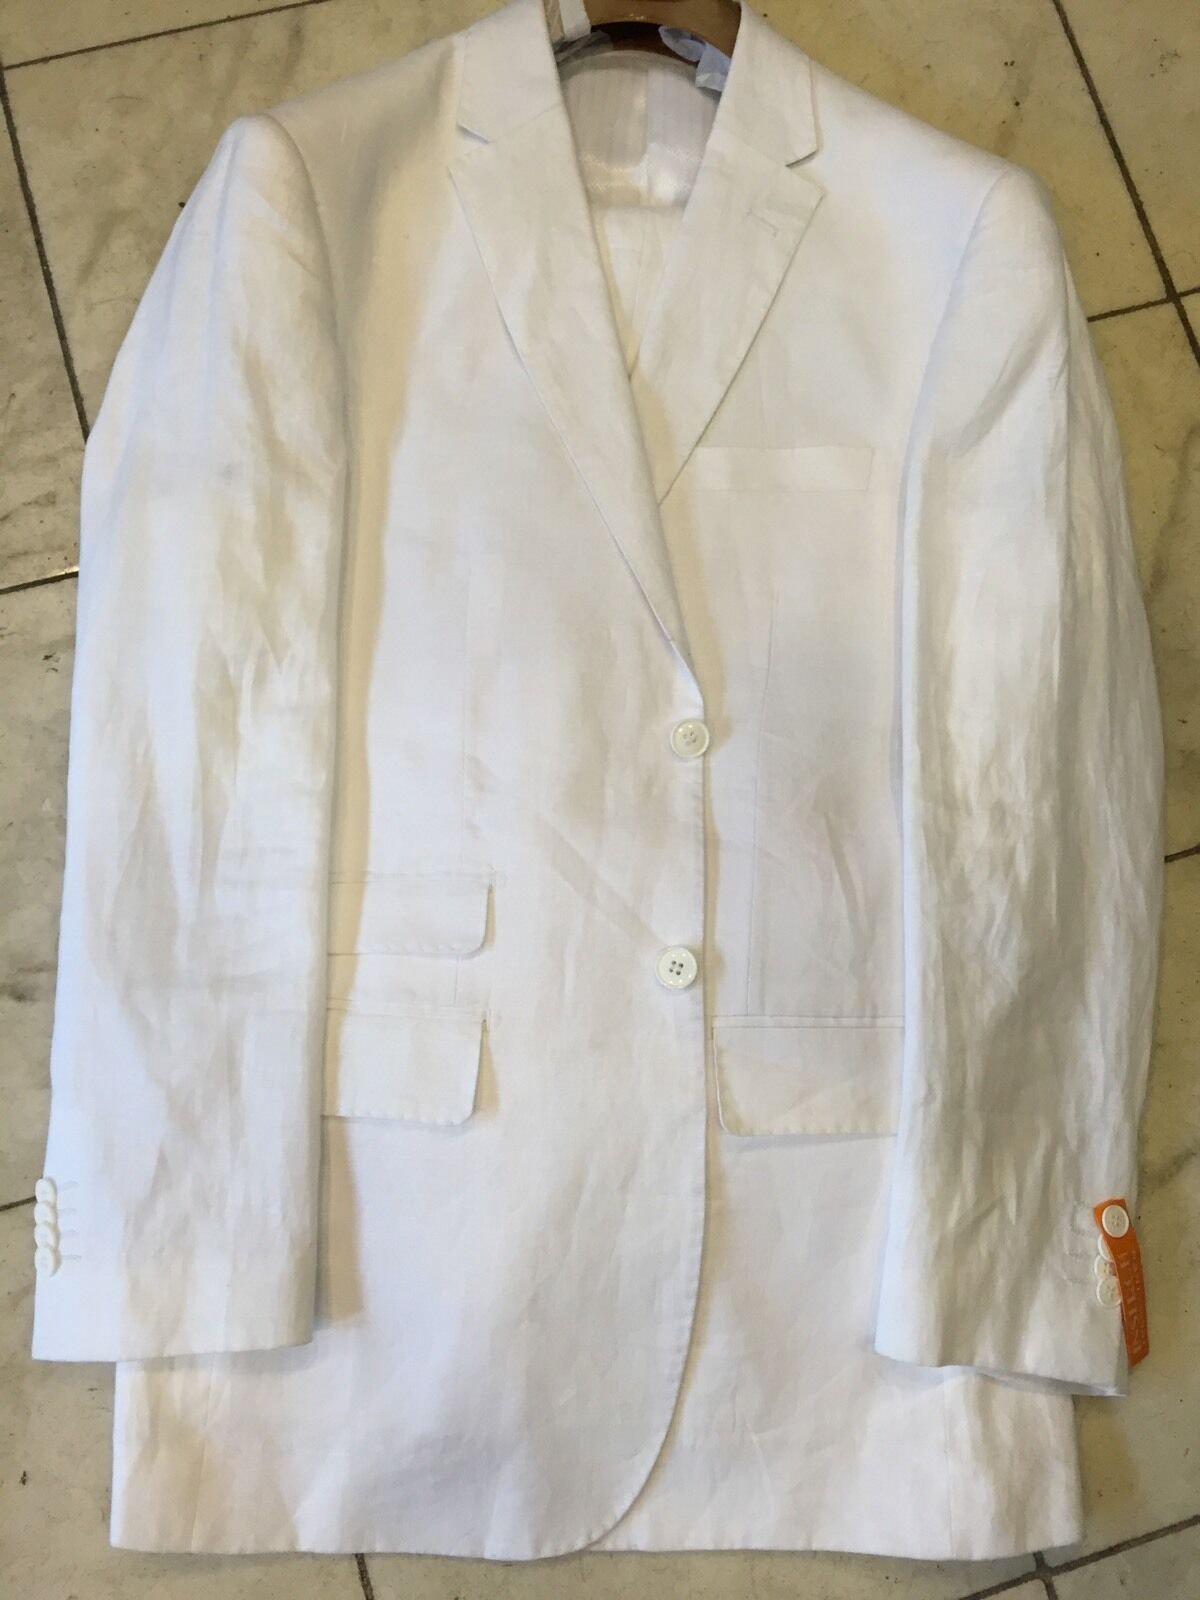 NEW INSERCH MENS 100% LINEN WHITE 2BT. SUIT LINED  BEACH WEDDING SIZE 40L